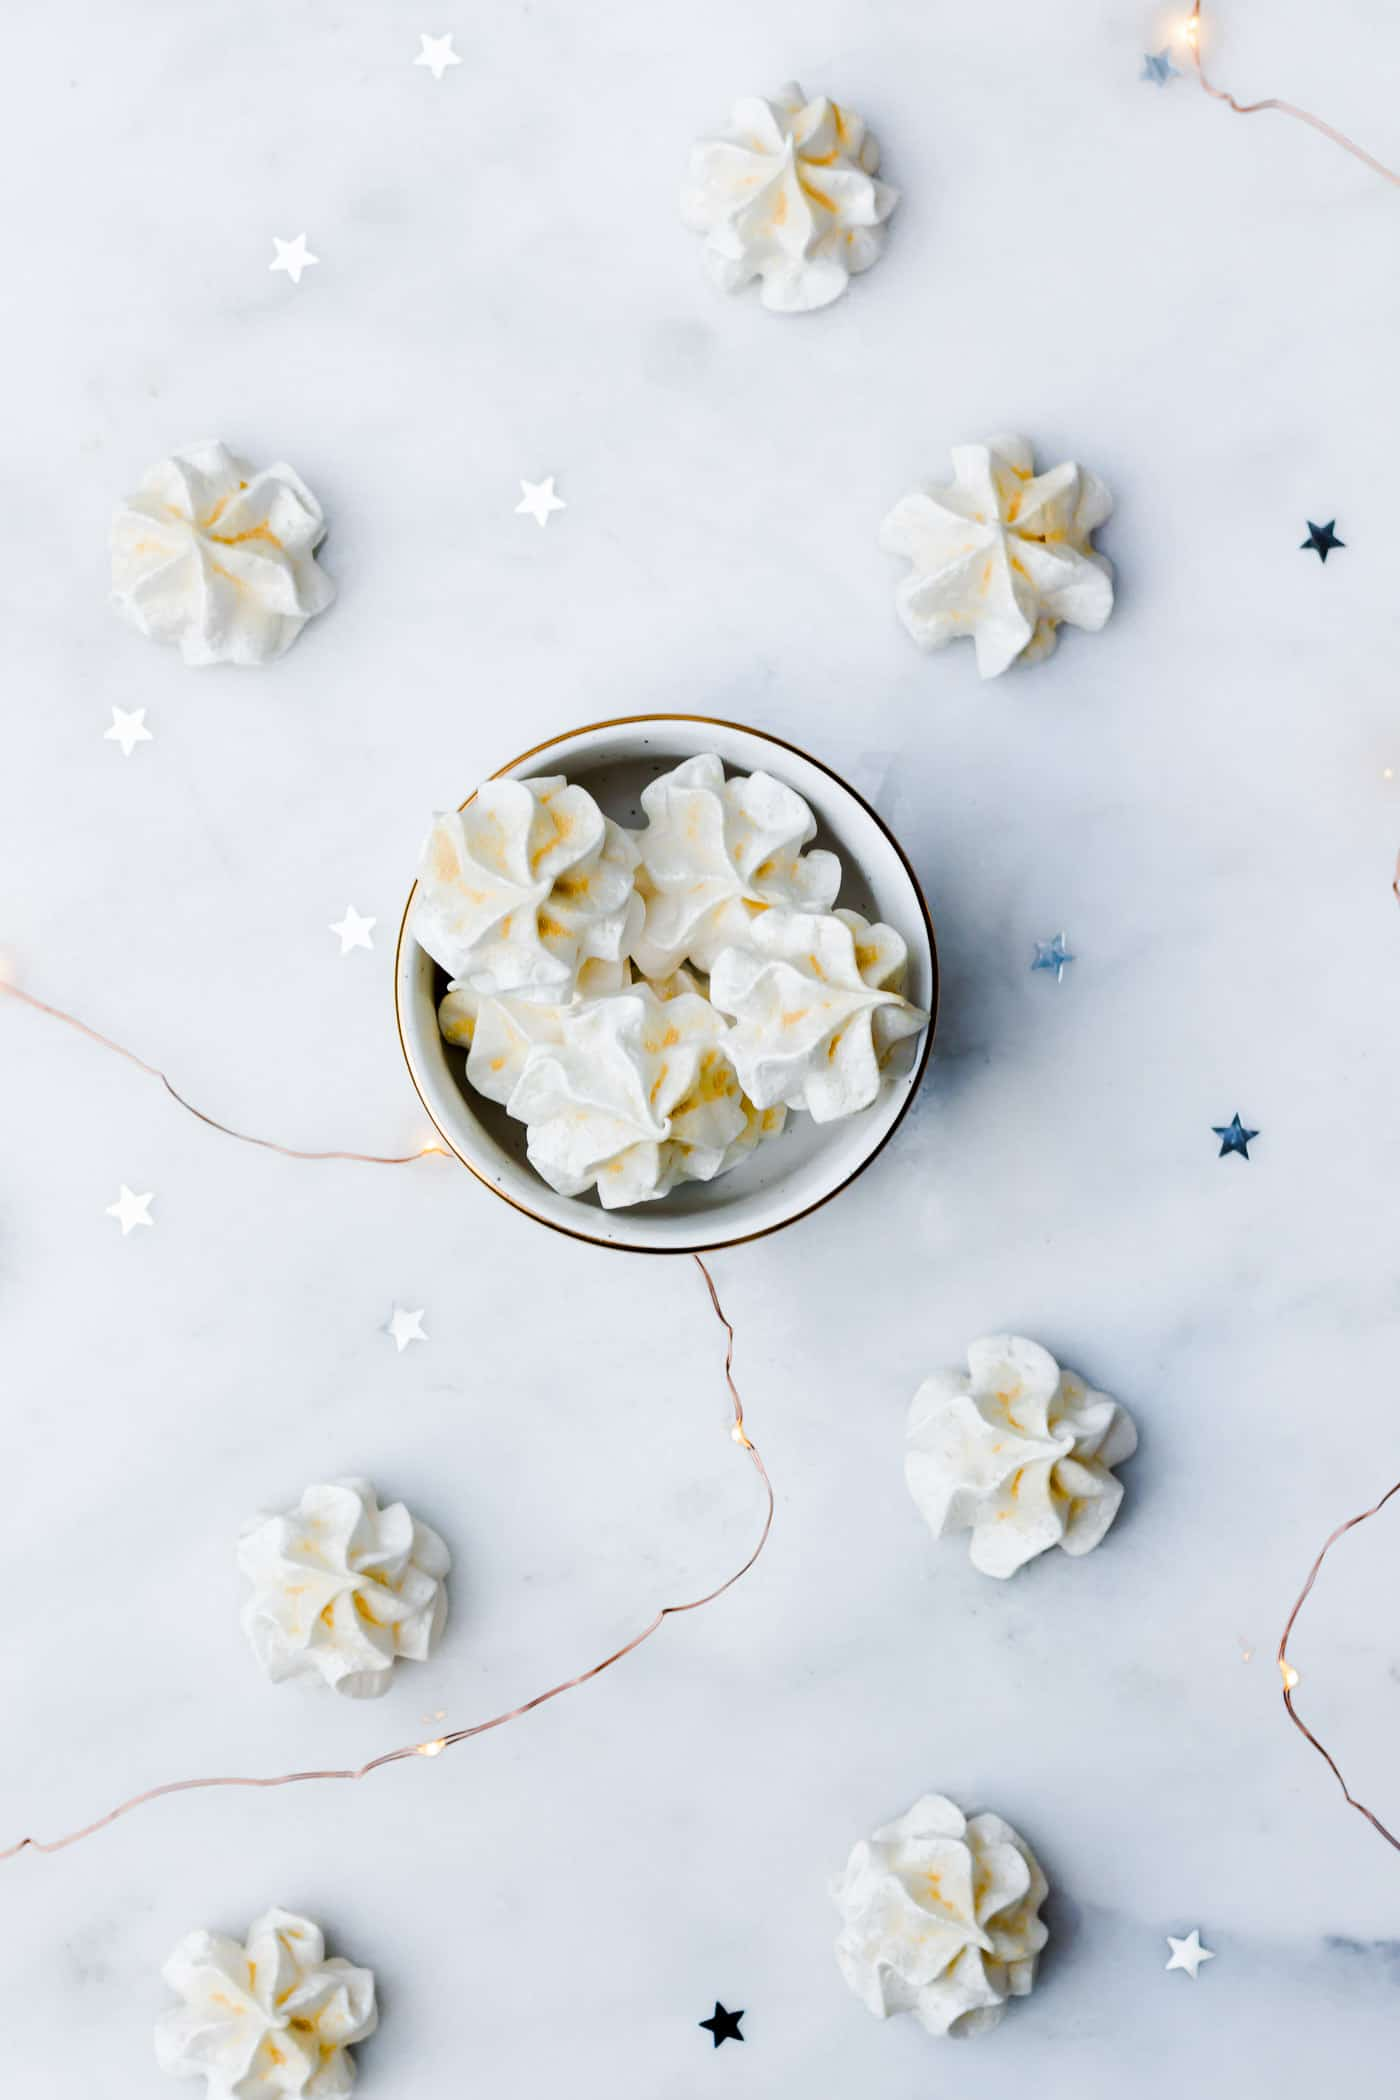 Champagne meringues scattered on a marble platter with copper string lights and silver star confetti